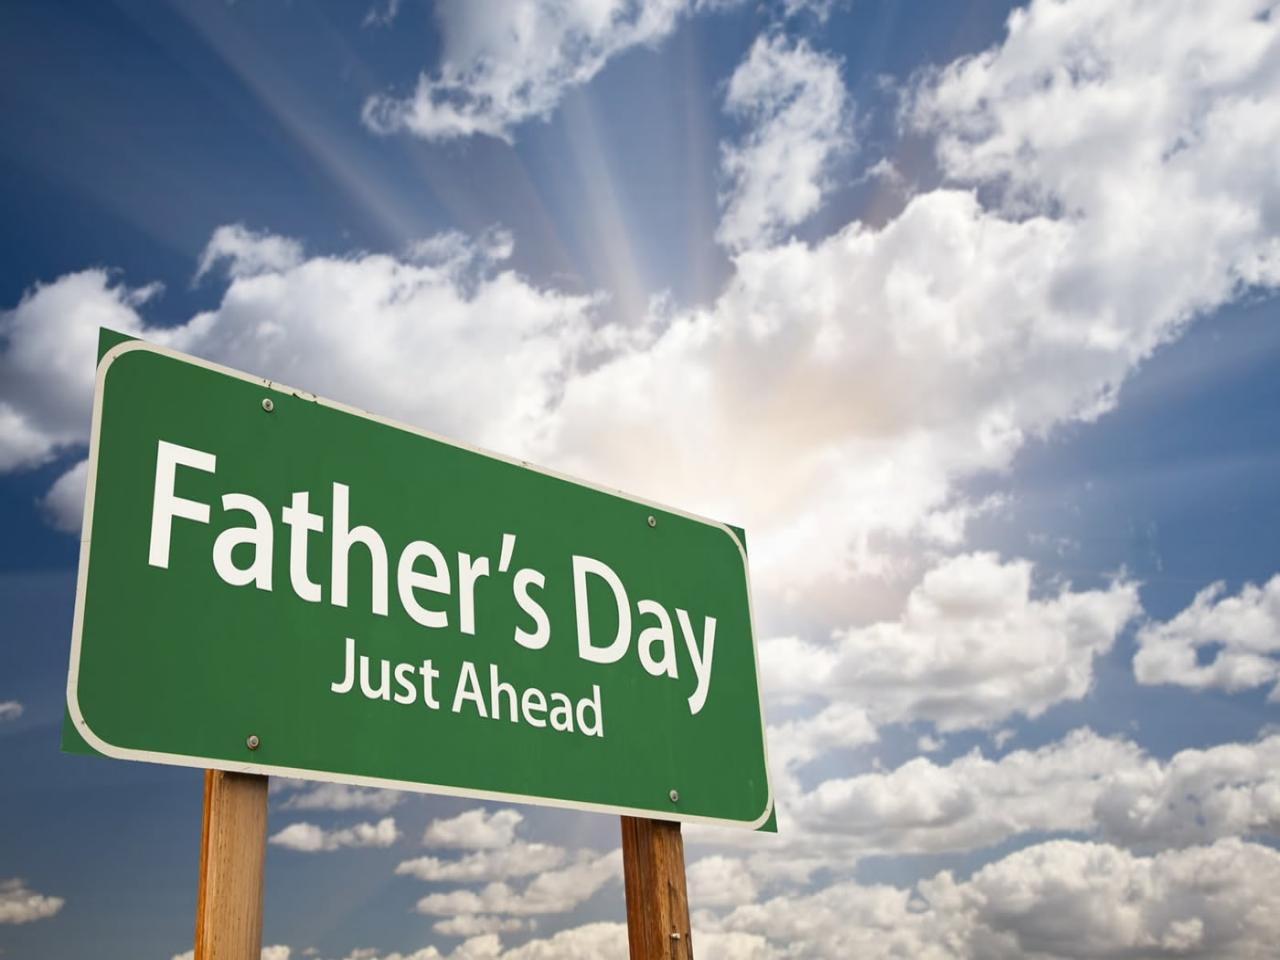 coming-fathers-day-2012-facebook-timeline-cover-photo